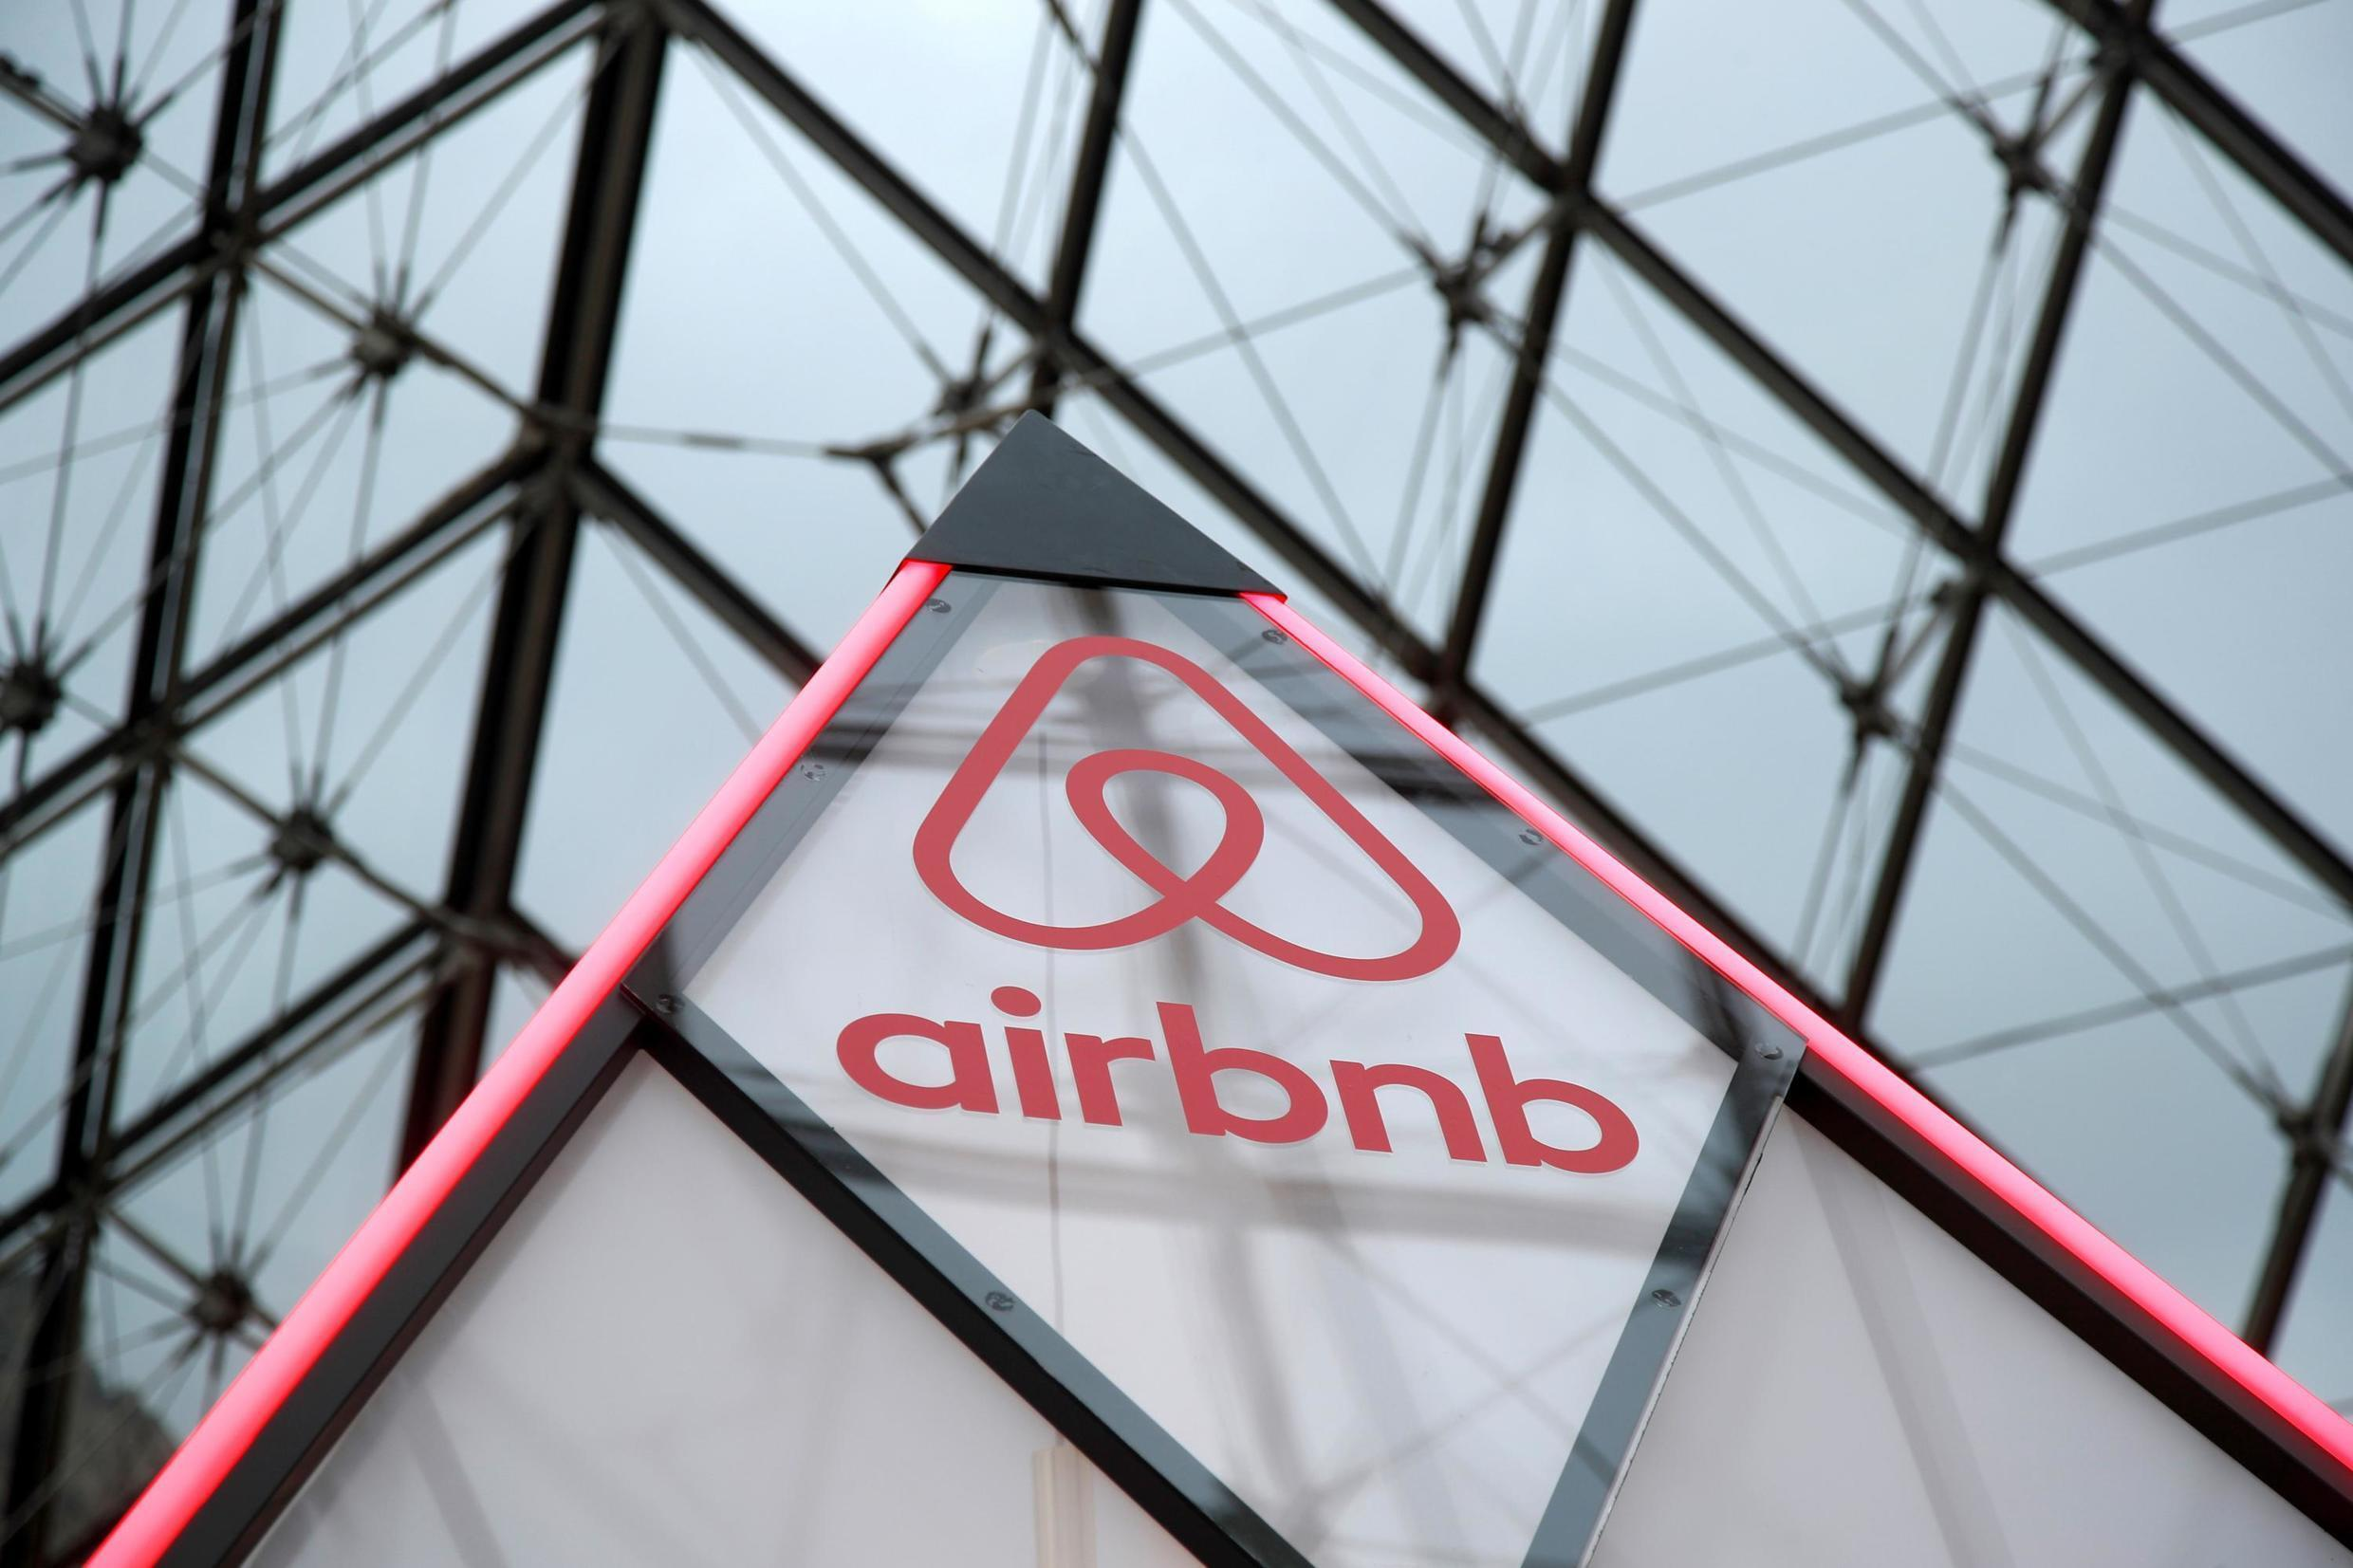 Airbnb's presence in France has always been contentious